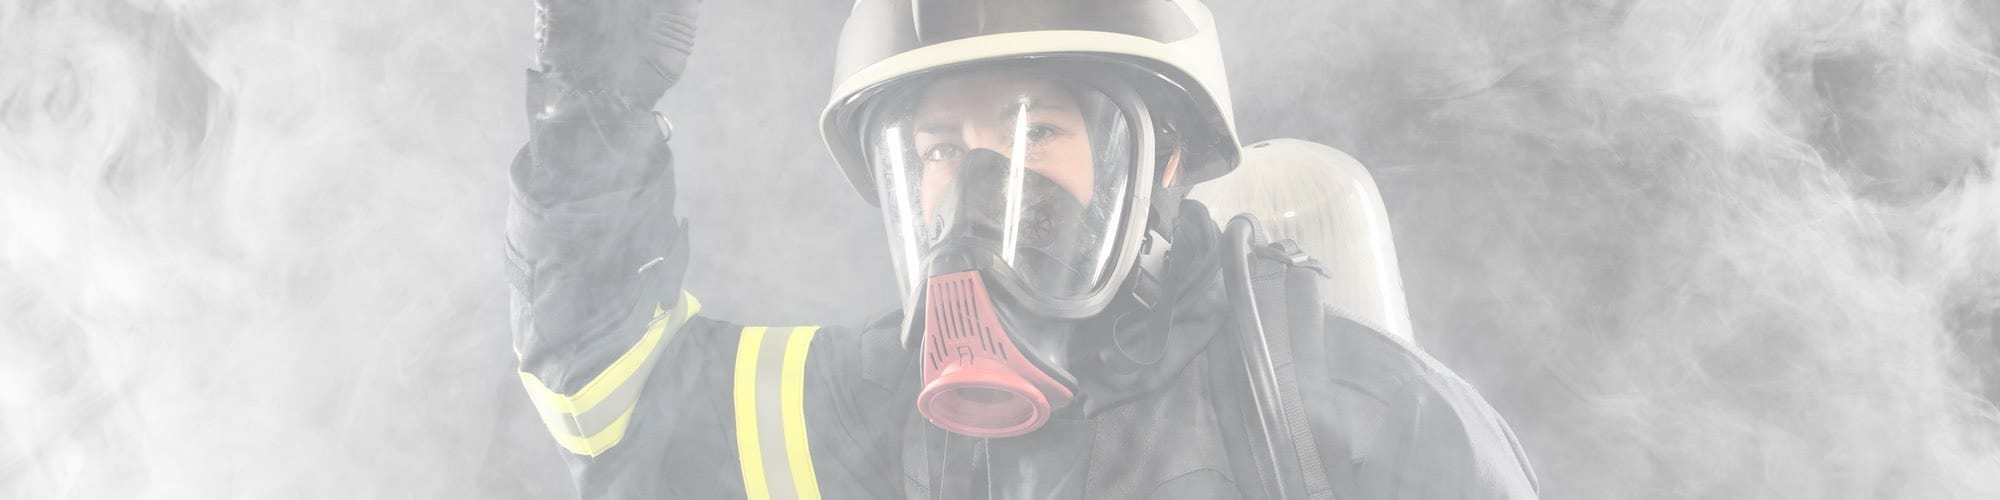 9 Things Your Respiratory Protection Program Must Include